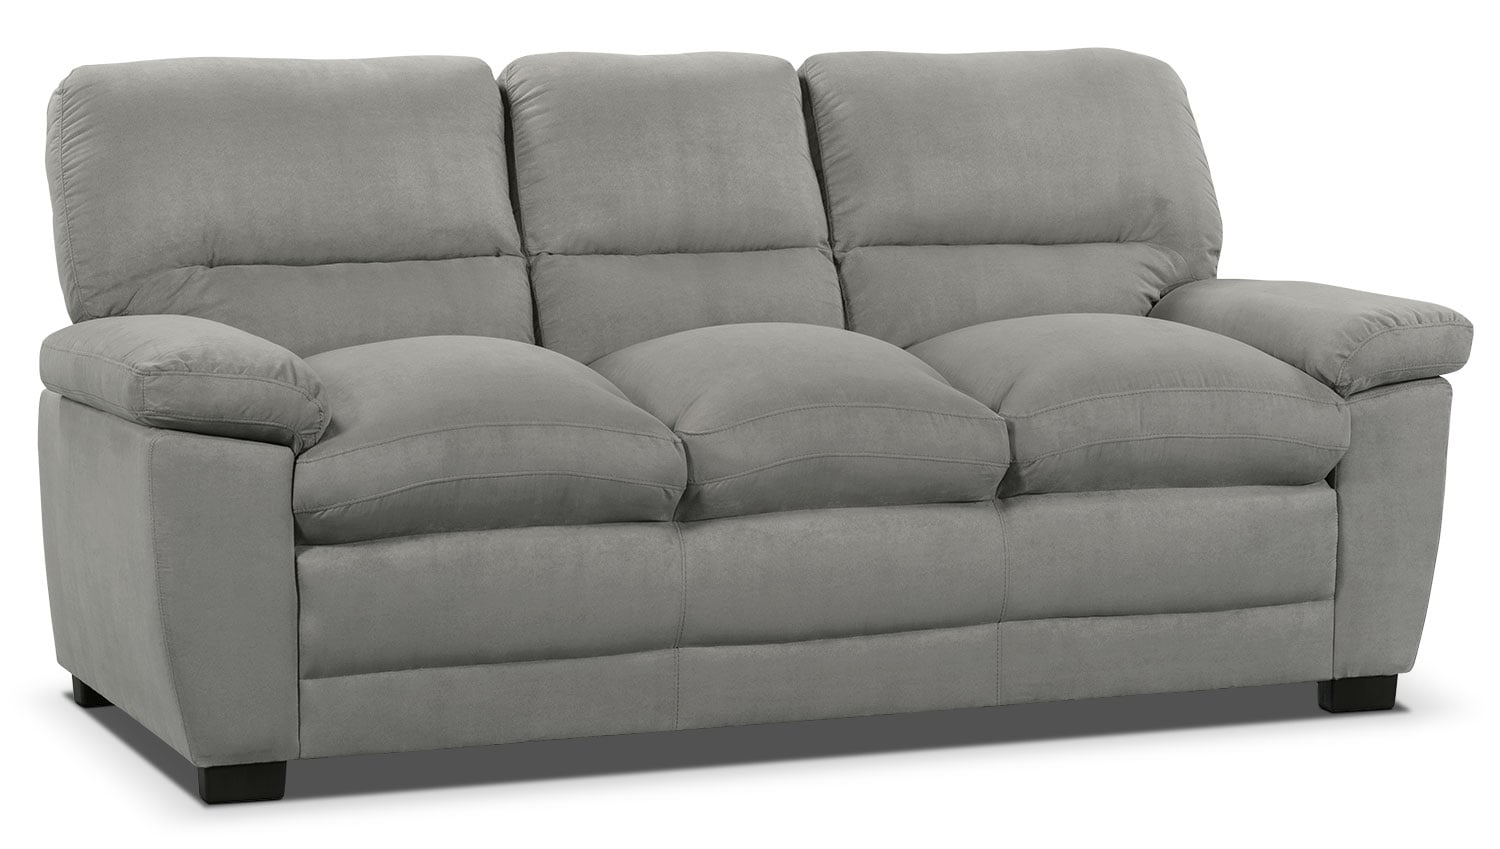 Peyton microsuede sofa grey the brick for Grey microsuede sectional sofa